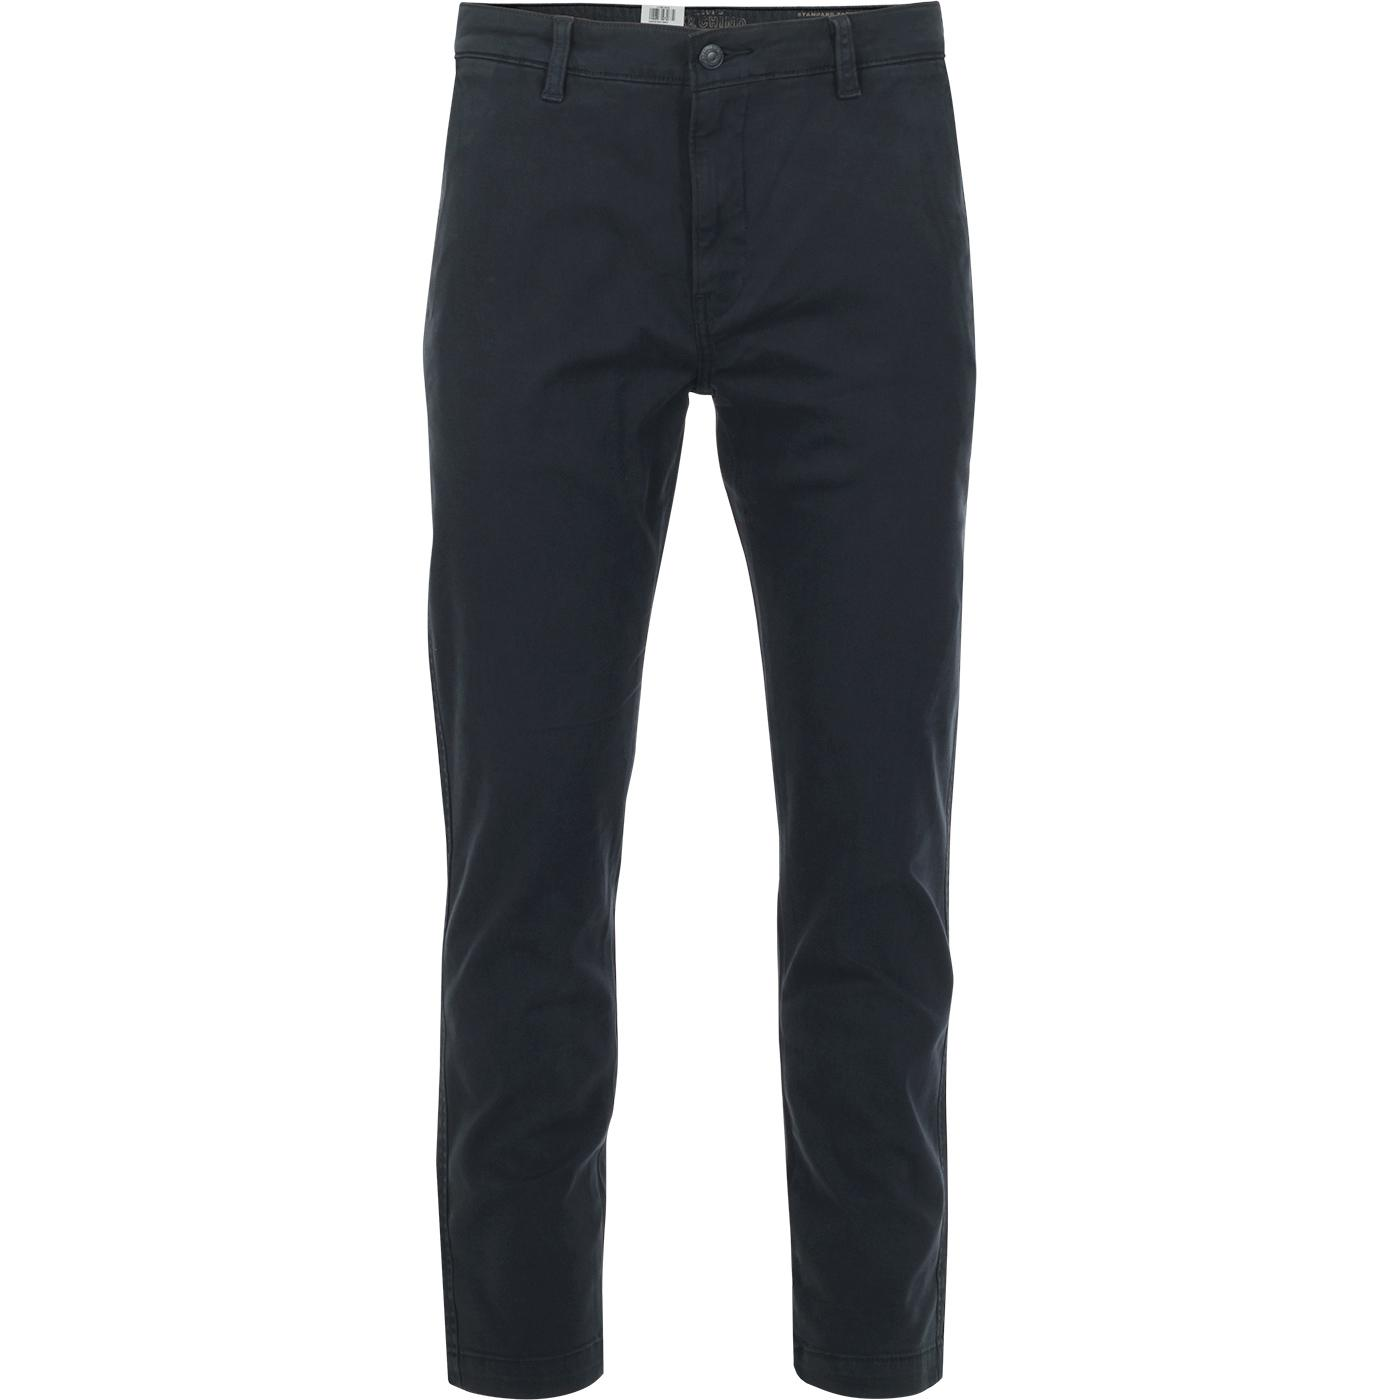 LEVI'S Standard Taper XX Chino Trousers (Navy)